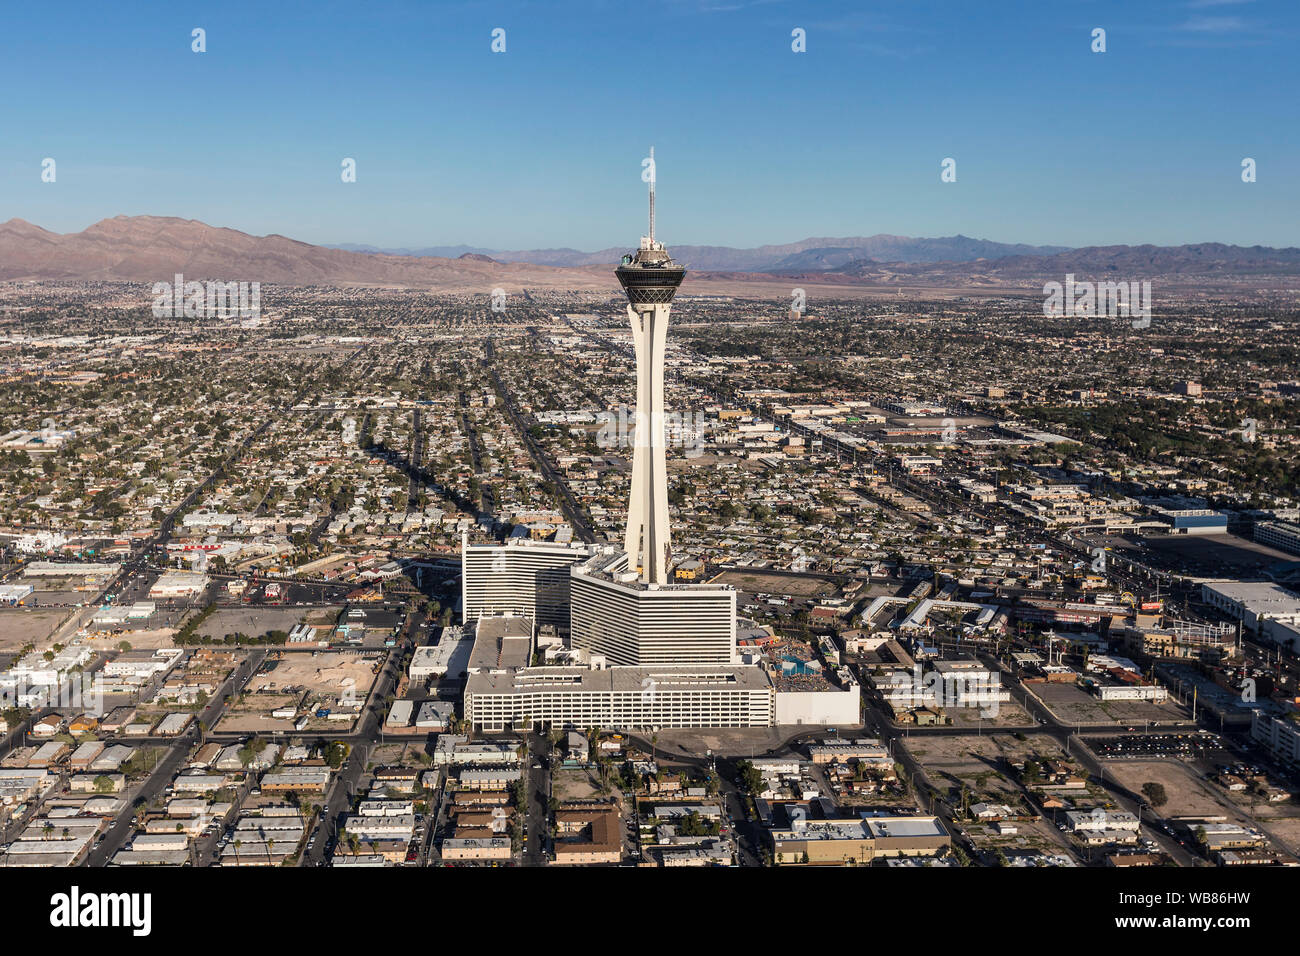 Aerial view of Stratosphere Casino Resort Tower on March 13, 2017 in Las Vegas, Nevada, USA. Stock Photo